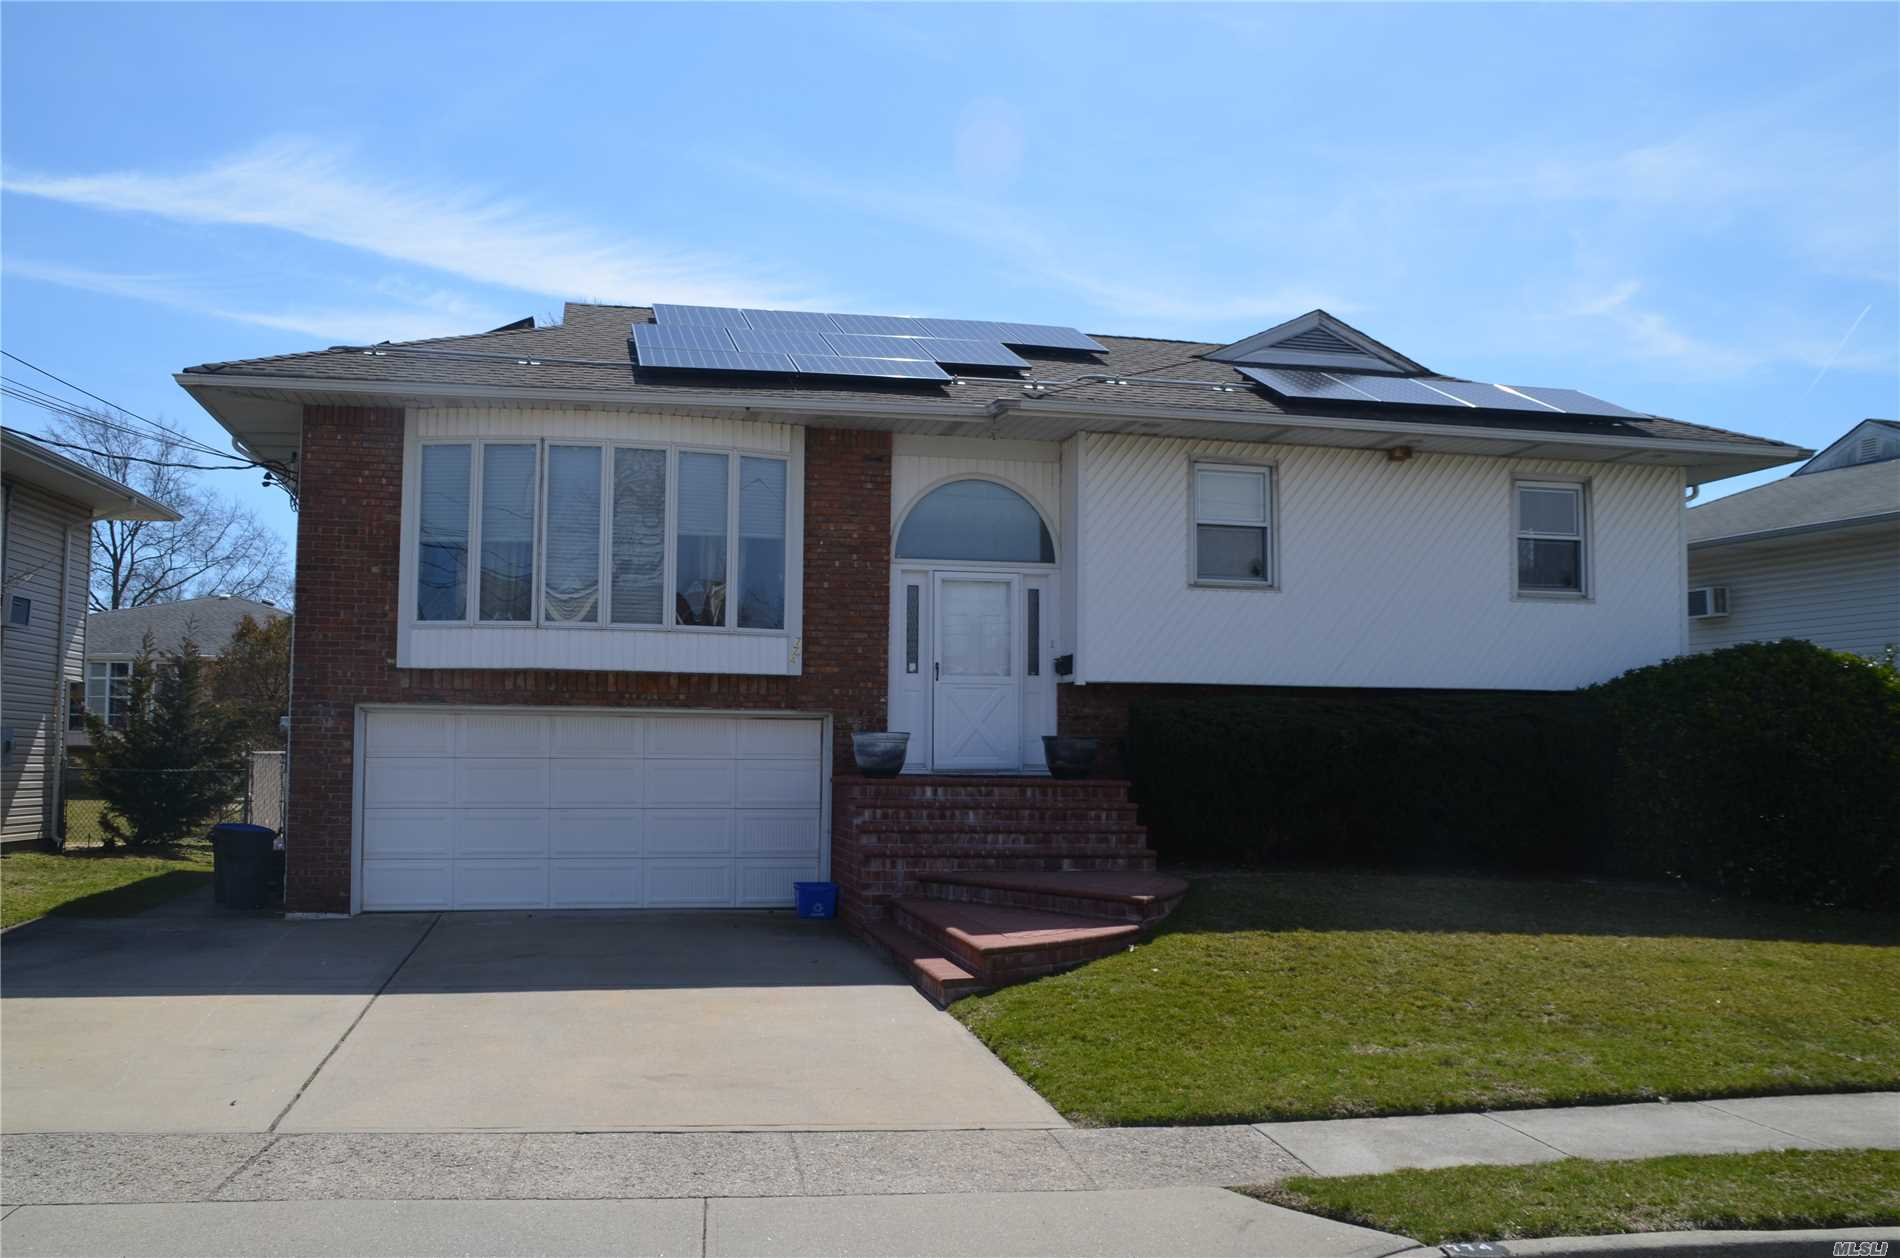 WHY PAY FOR ELECTRIC?  Full Solar Panel Roof System. Large Expanded Wide Line High Ranch, situated on a side street, blocks to the Middle & Elementary Schools, and Award Winning Baldwin Park. This home features 5 BRs, 3 FBaths, Large Open EIK, Solar Panels & Family Room. Possible Mother /Daughter with proper permits.